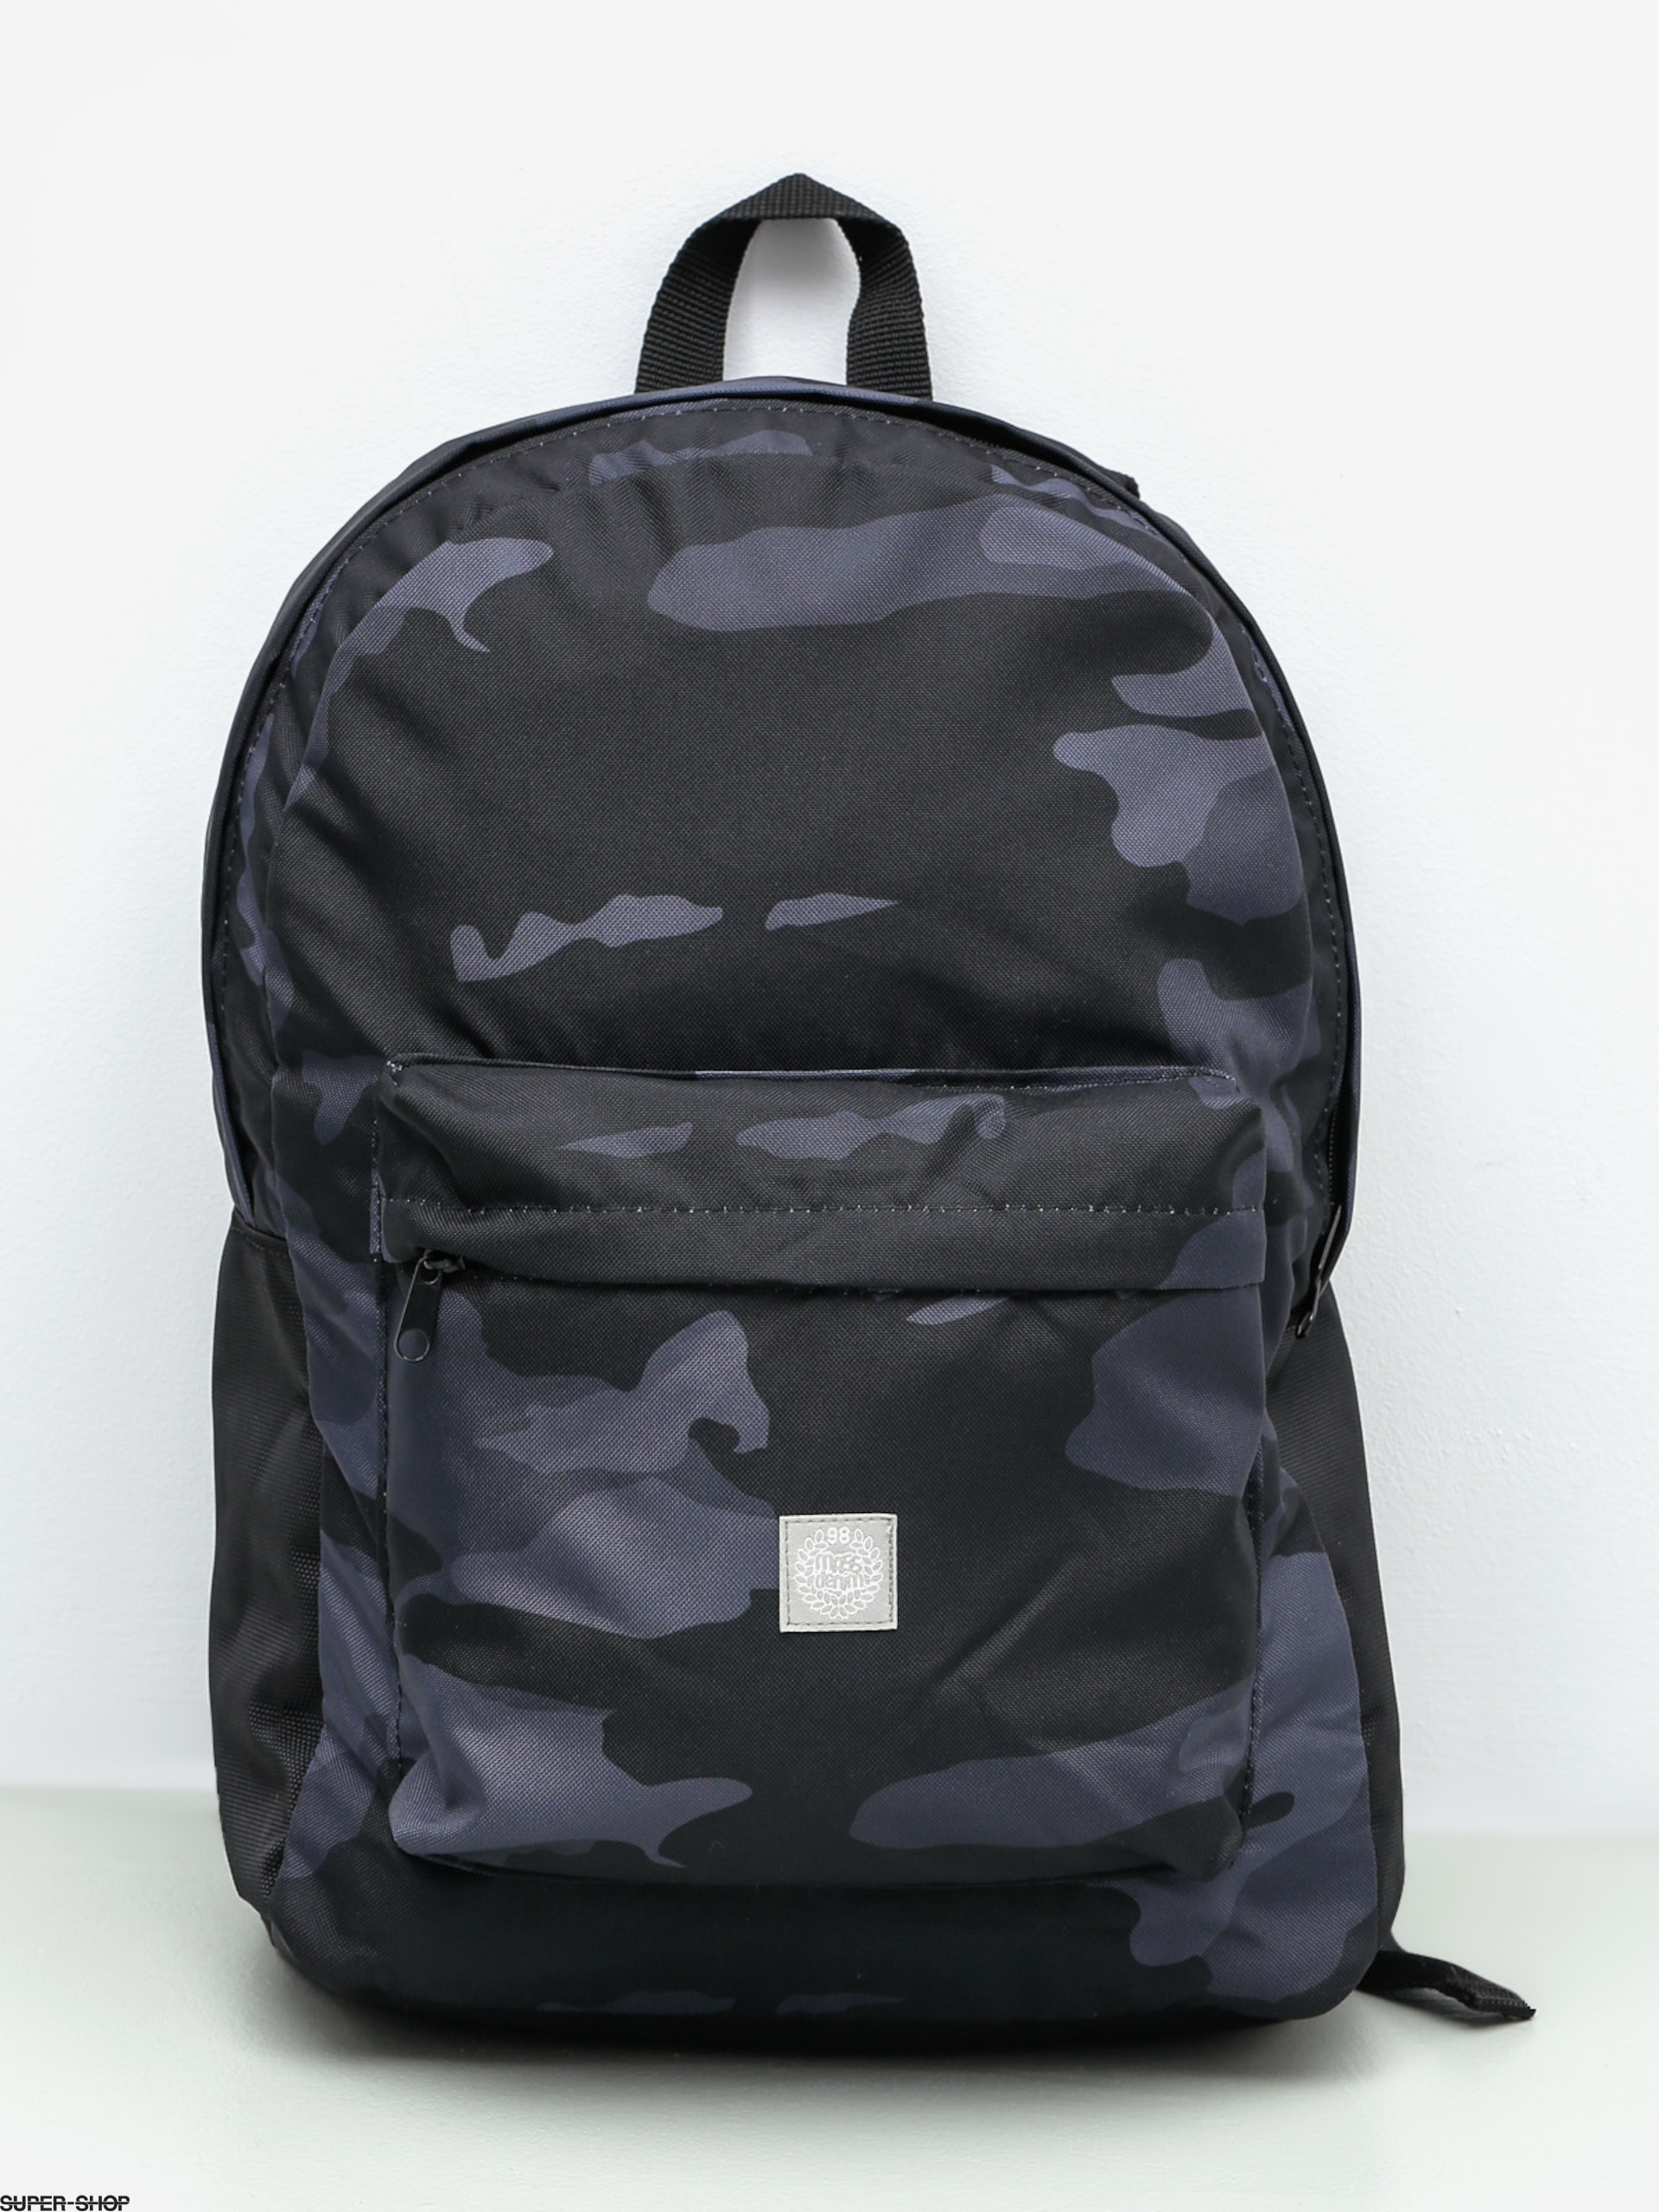 MassDnm Backpack Base (black camo)